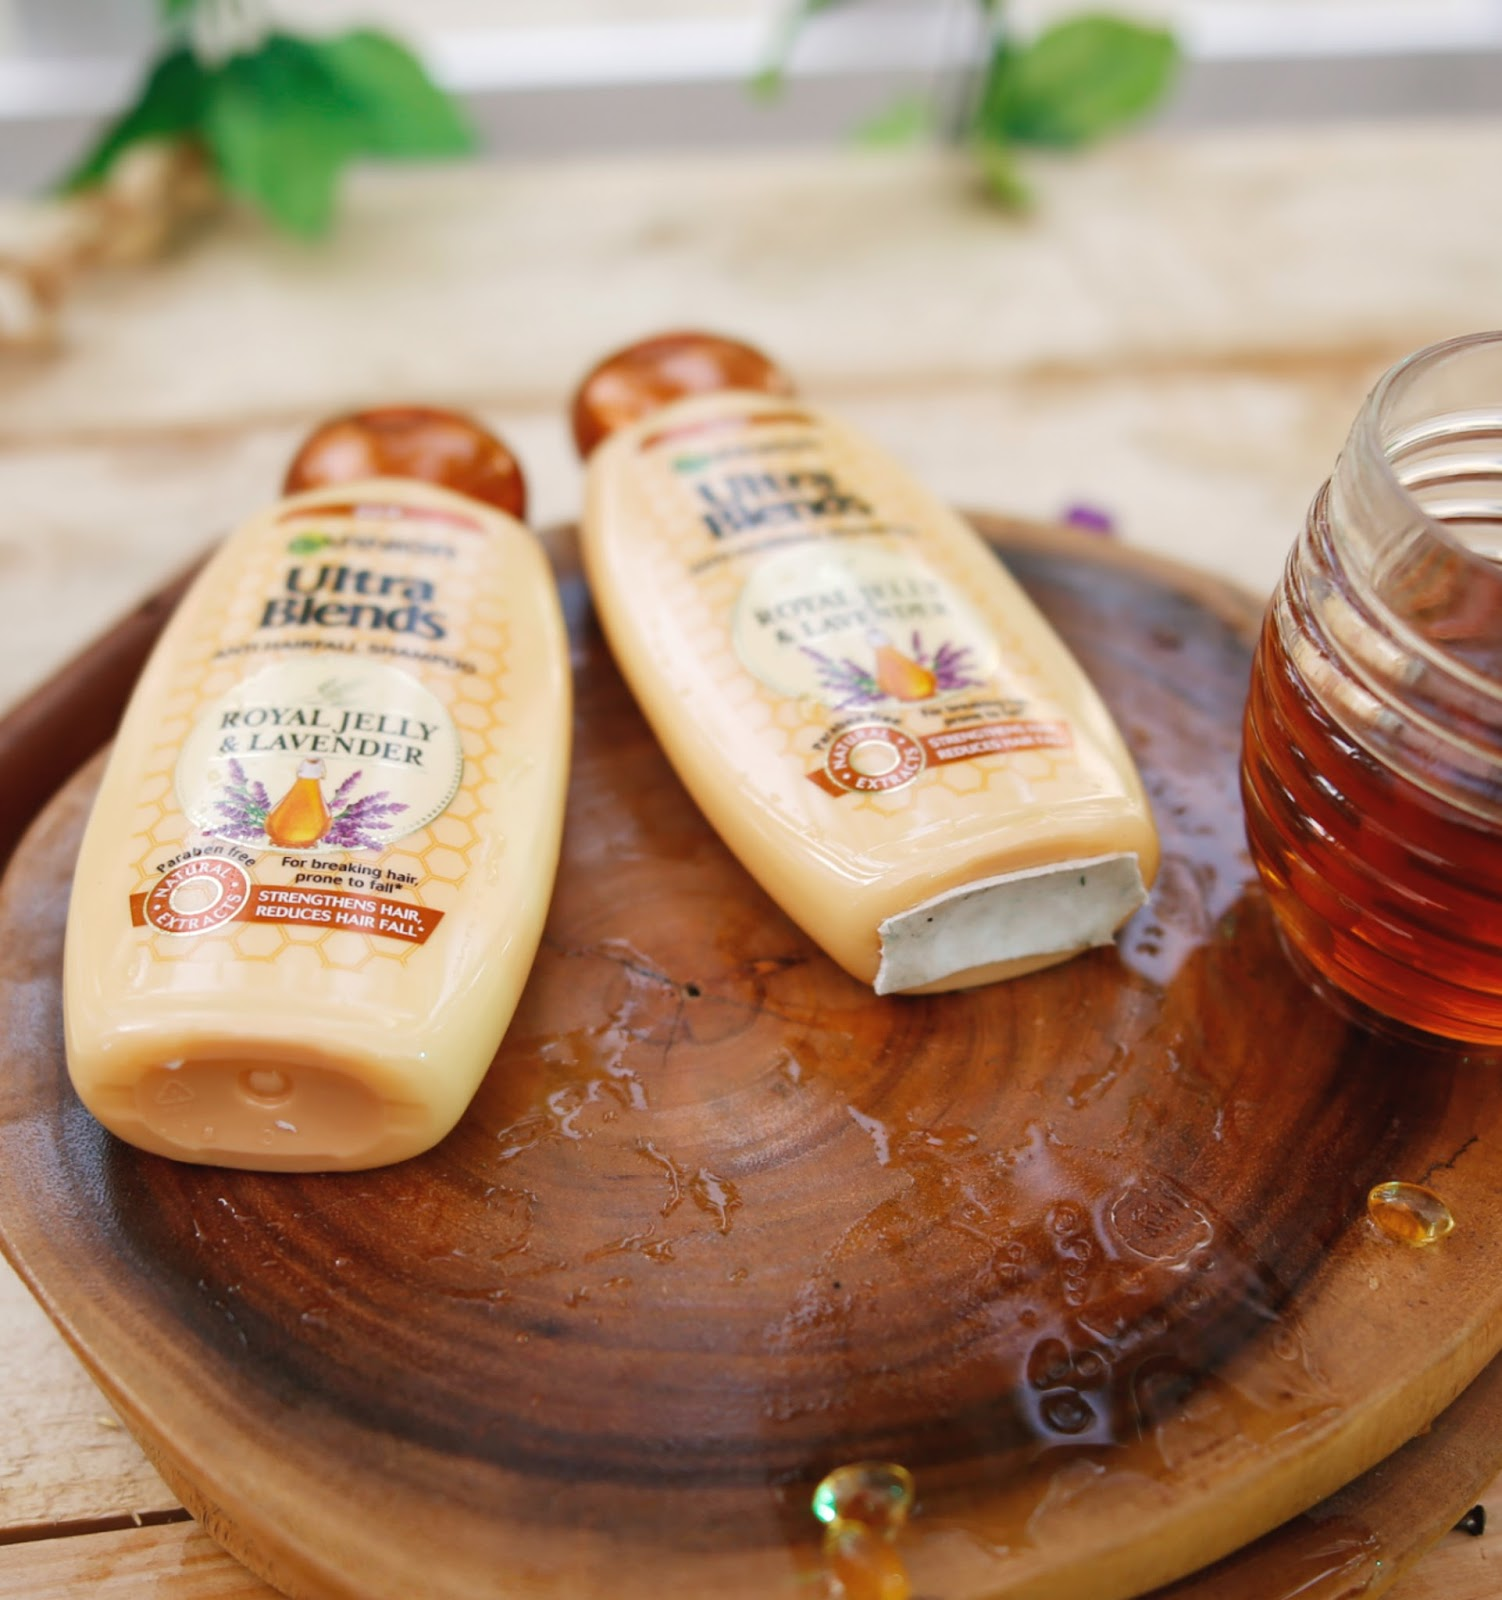 Garnier Ultra Blends Royal Jelly and Lavender Shampoo Review